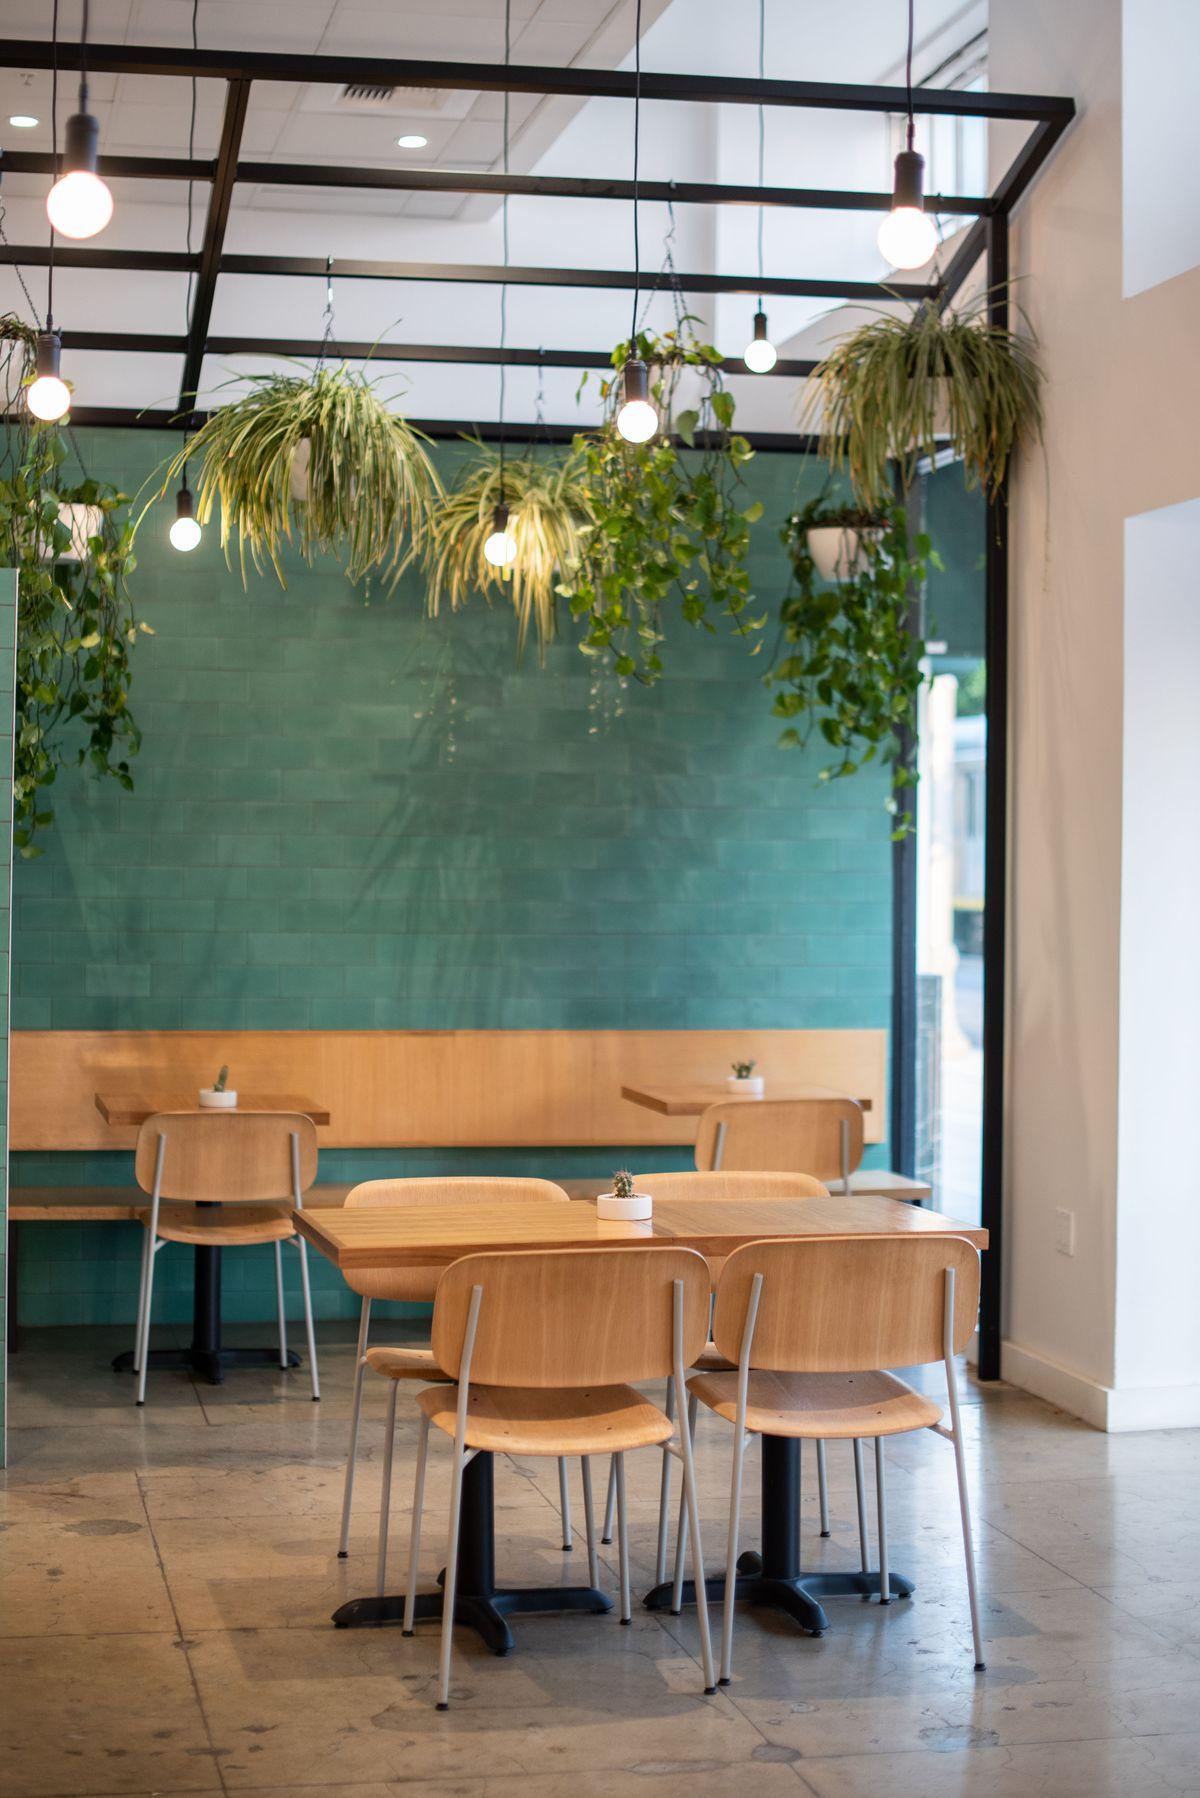 A medium green dining room with shiny tile and lots of hanging plants and blonde wood table.